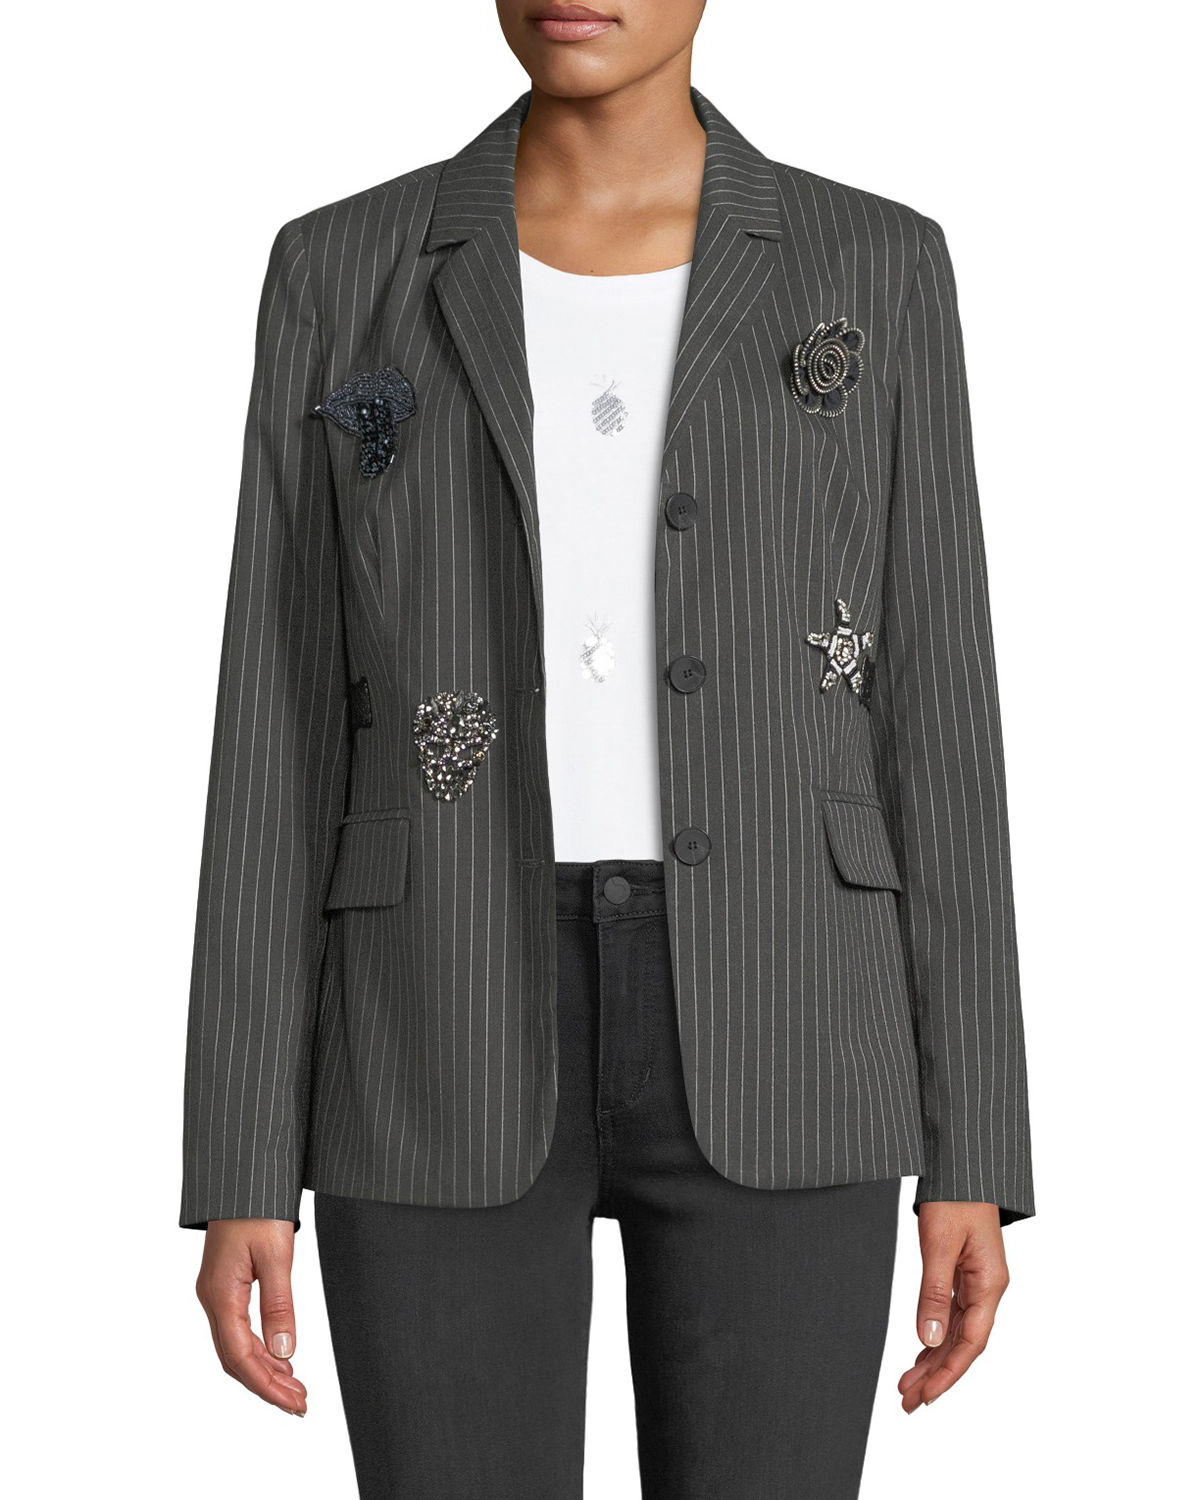 Romeo & Juliet Couture PATCH-EMBELLISHED PINSTRIPE BLAZER